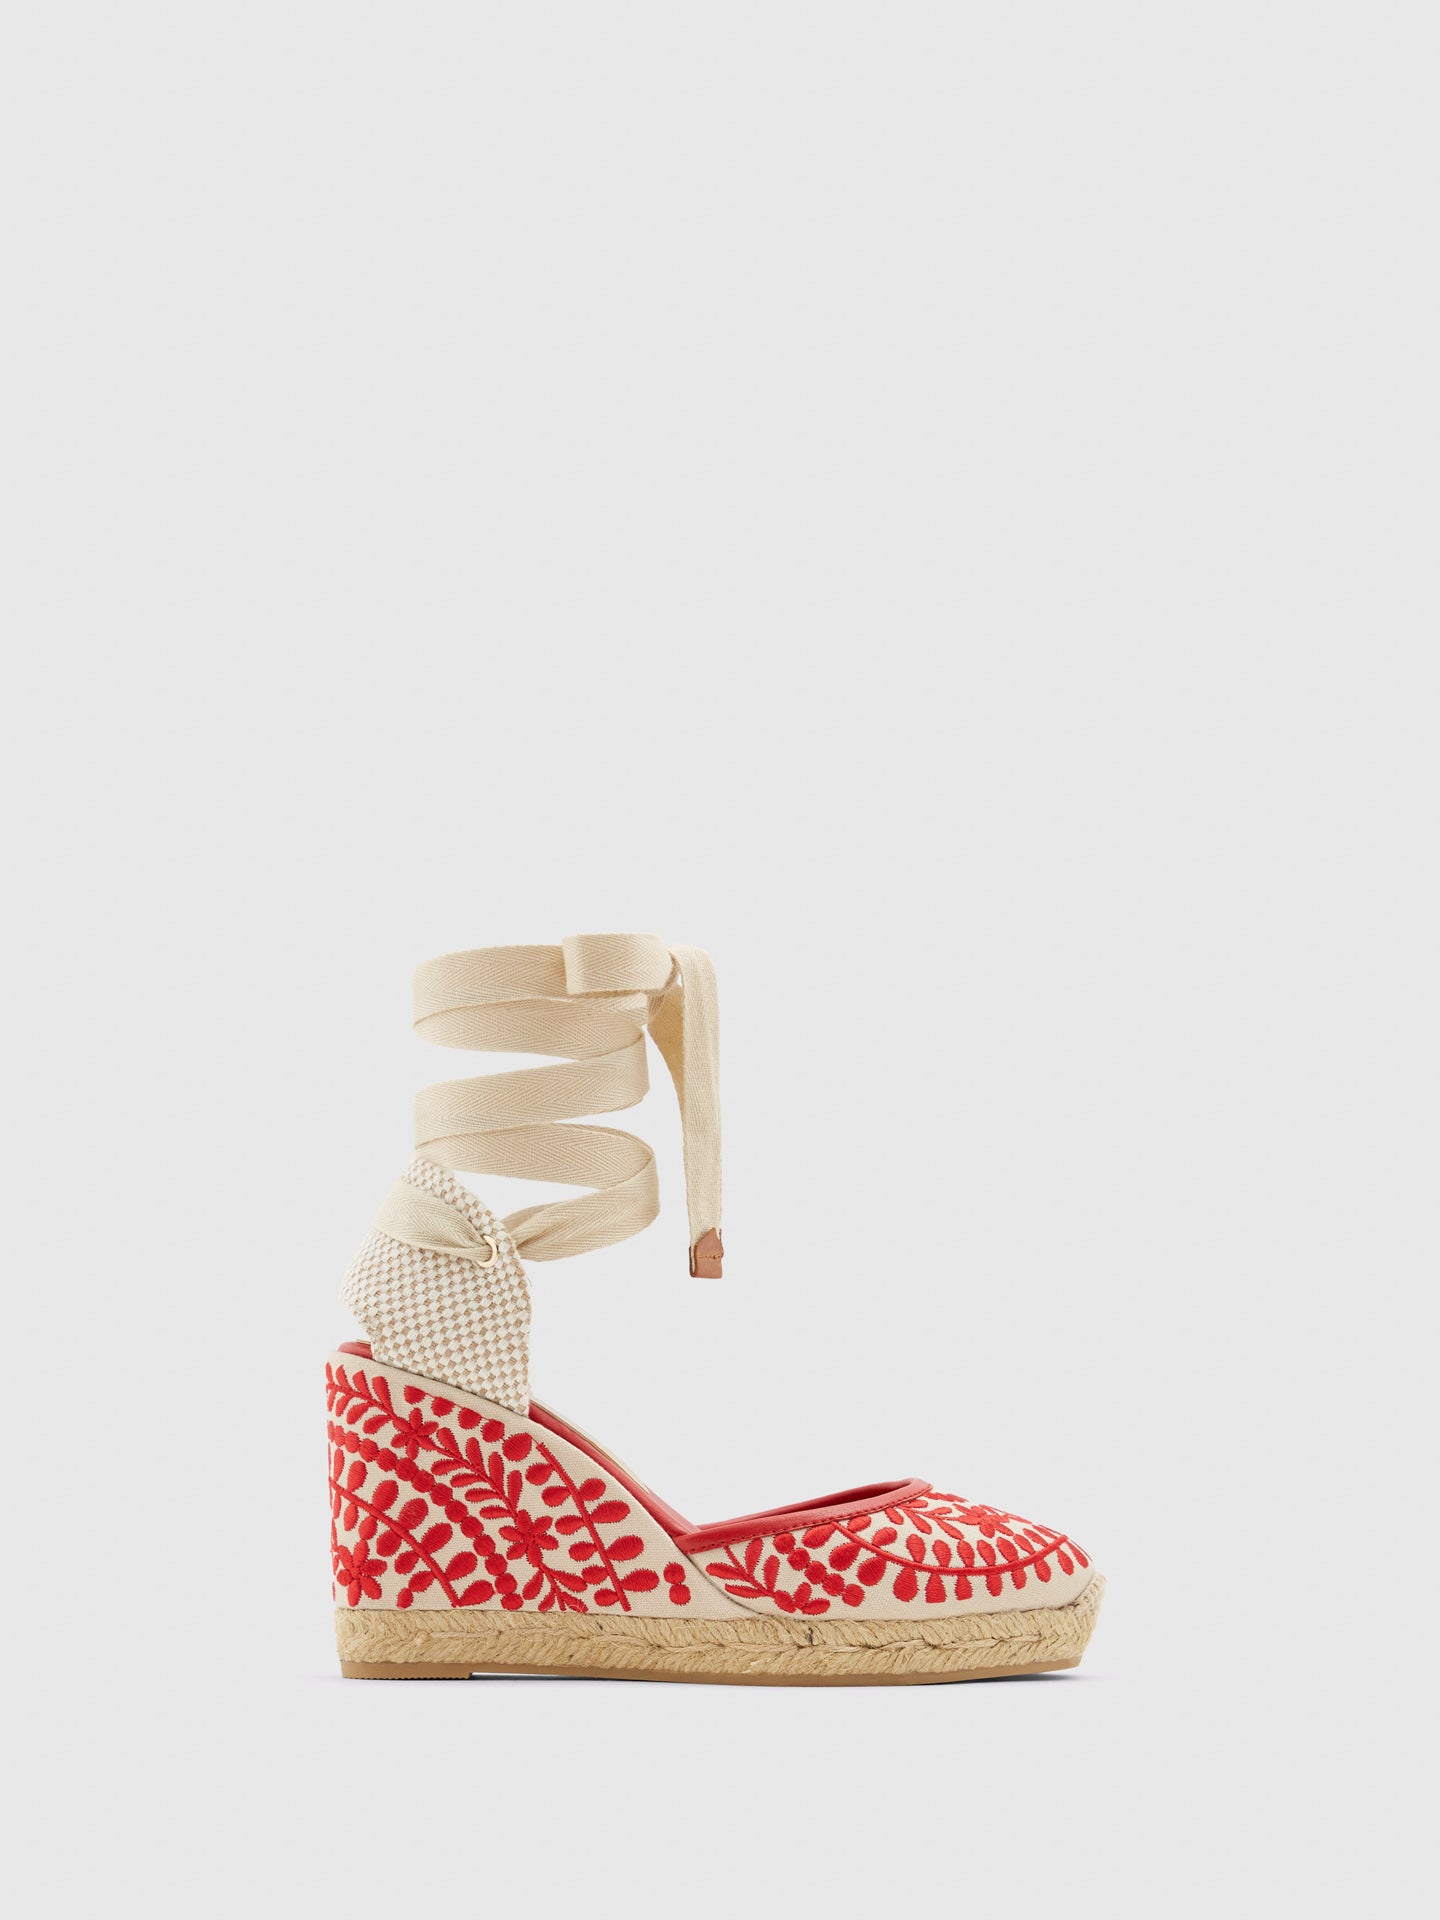 Aldo Red Wedge Espadrilles